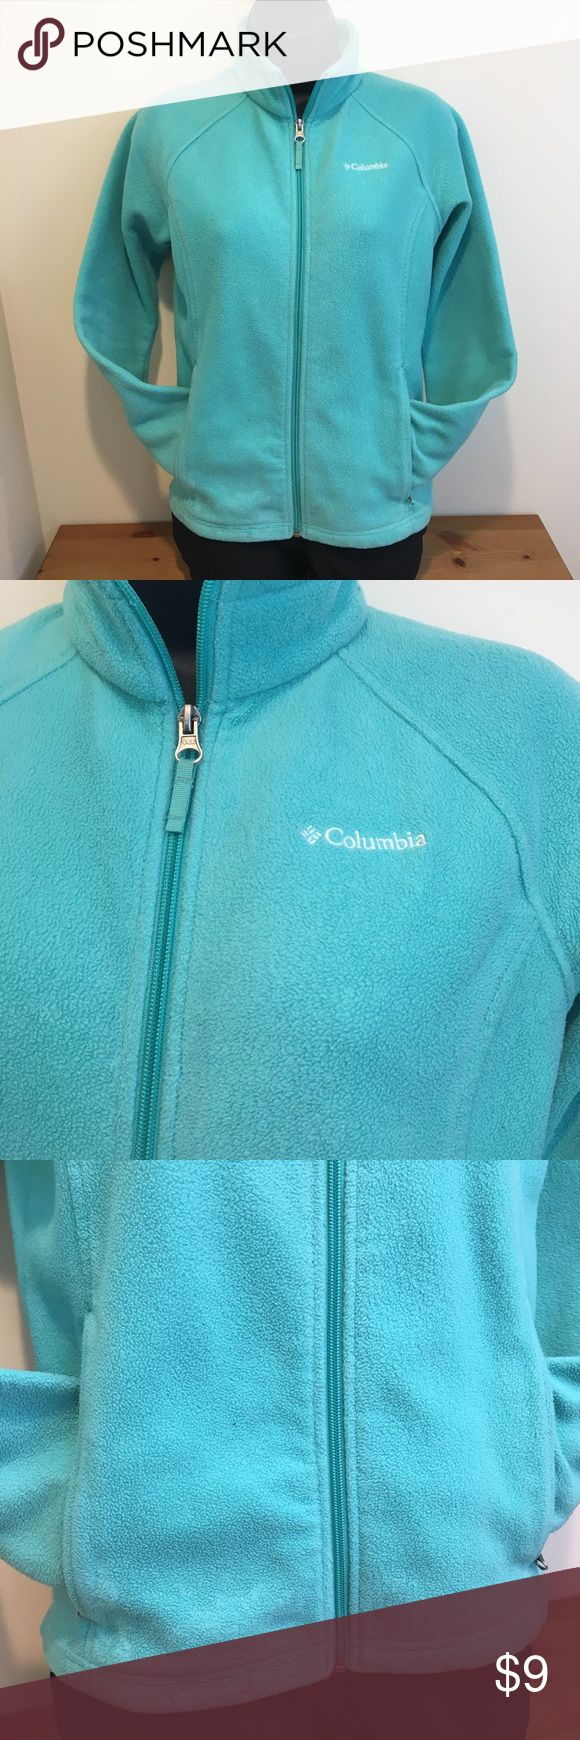 3/$15 or $9 FIRM Columbia Fleece Jacket Girl's Lg Get a great deal on this Columbia jacket! It is a Girl's size large 14/16, teal color, used but in decent shape. No rips or holes, but there is a small mark on the right sleeve and some general wear from normal use noted. It's zips all the way up and down but at the very top it feels a little tight. Priced accordingly, lots of use left in this fleece. Smoke free home. Part of my 3/$15 Bundle sale, $9 firm if purchased separately. Columbia…